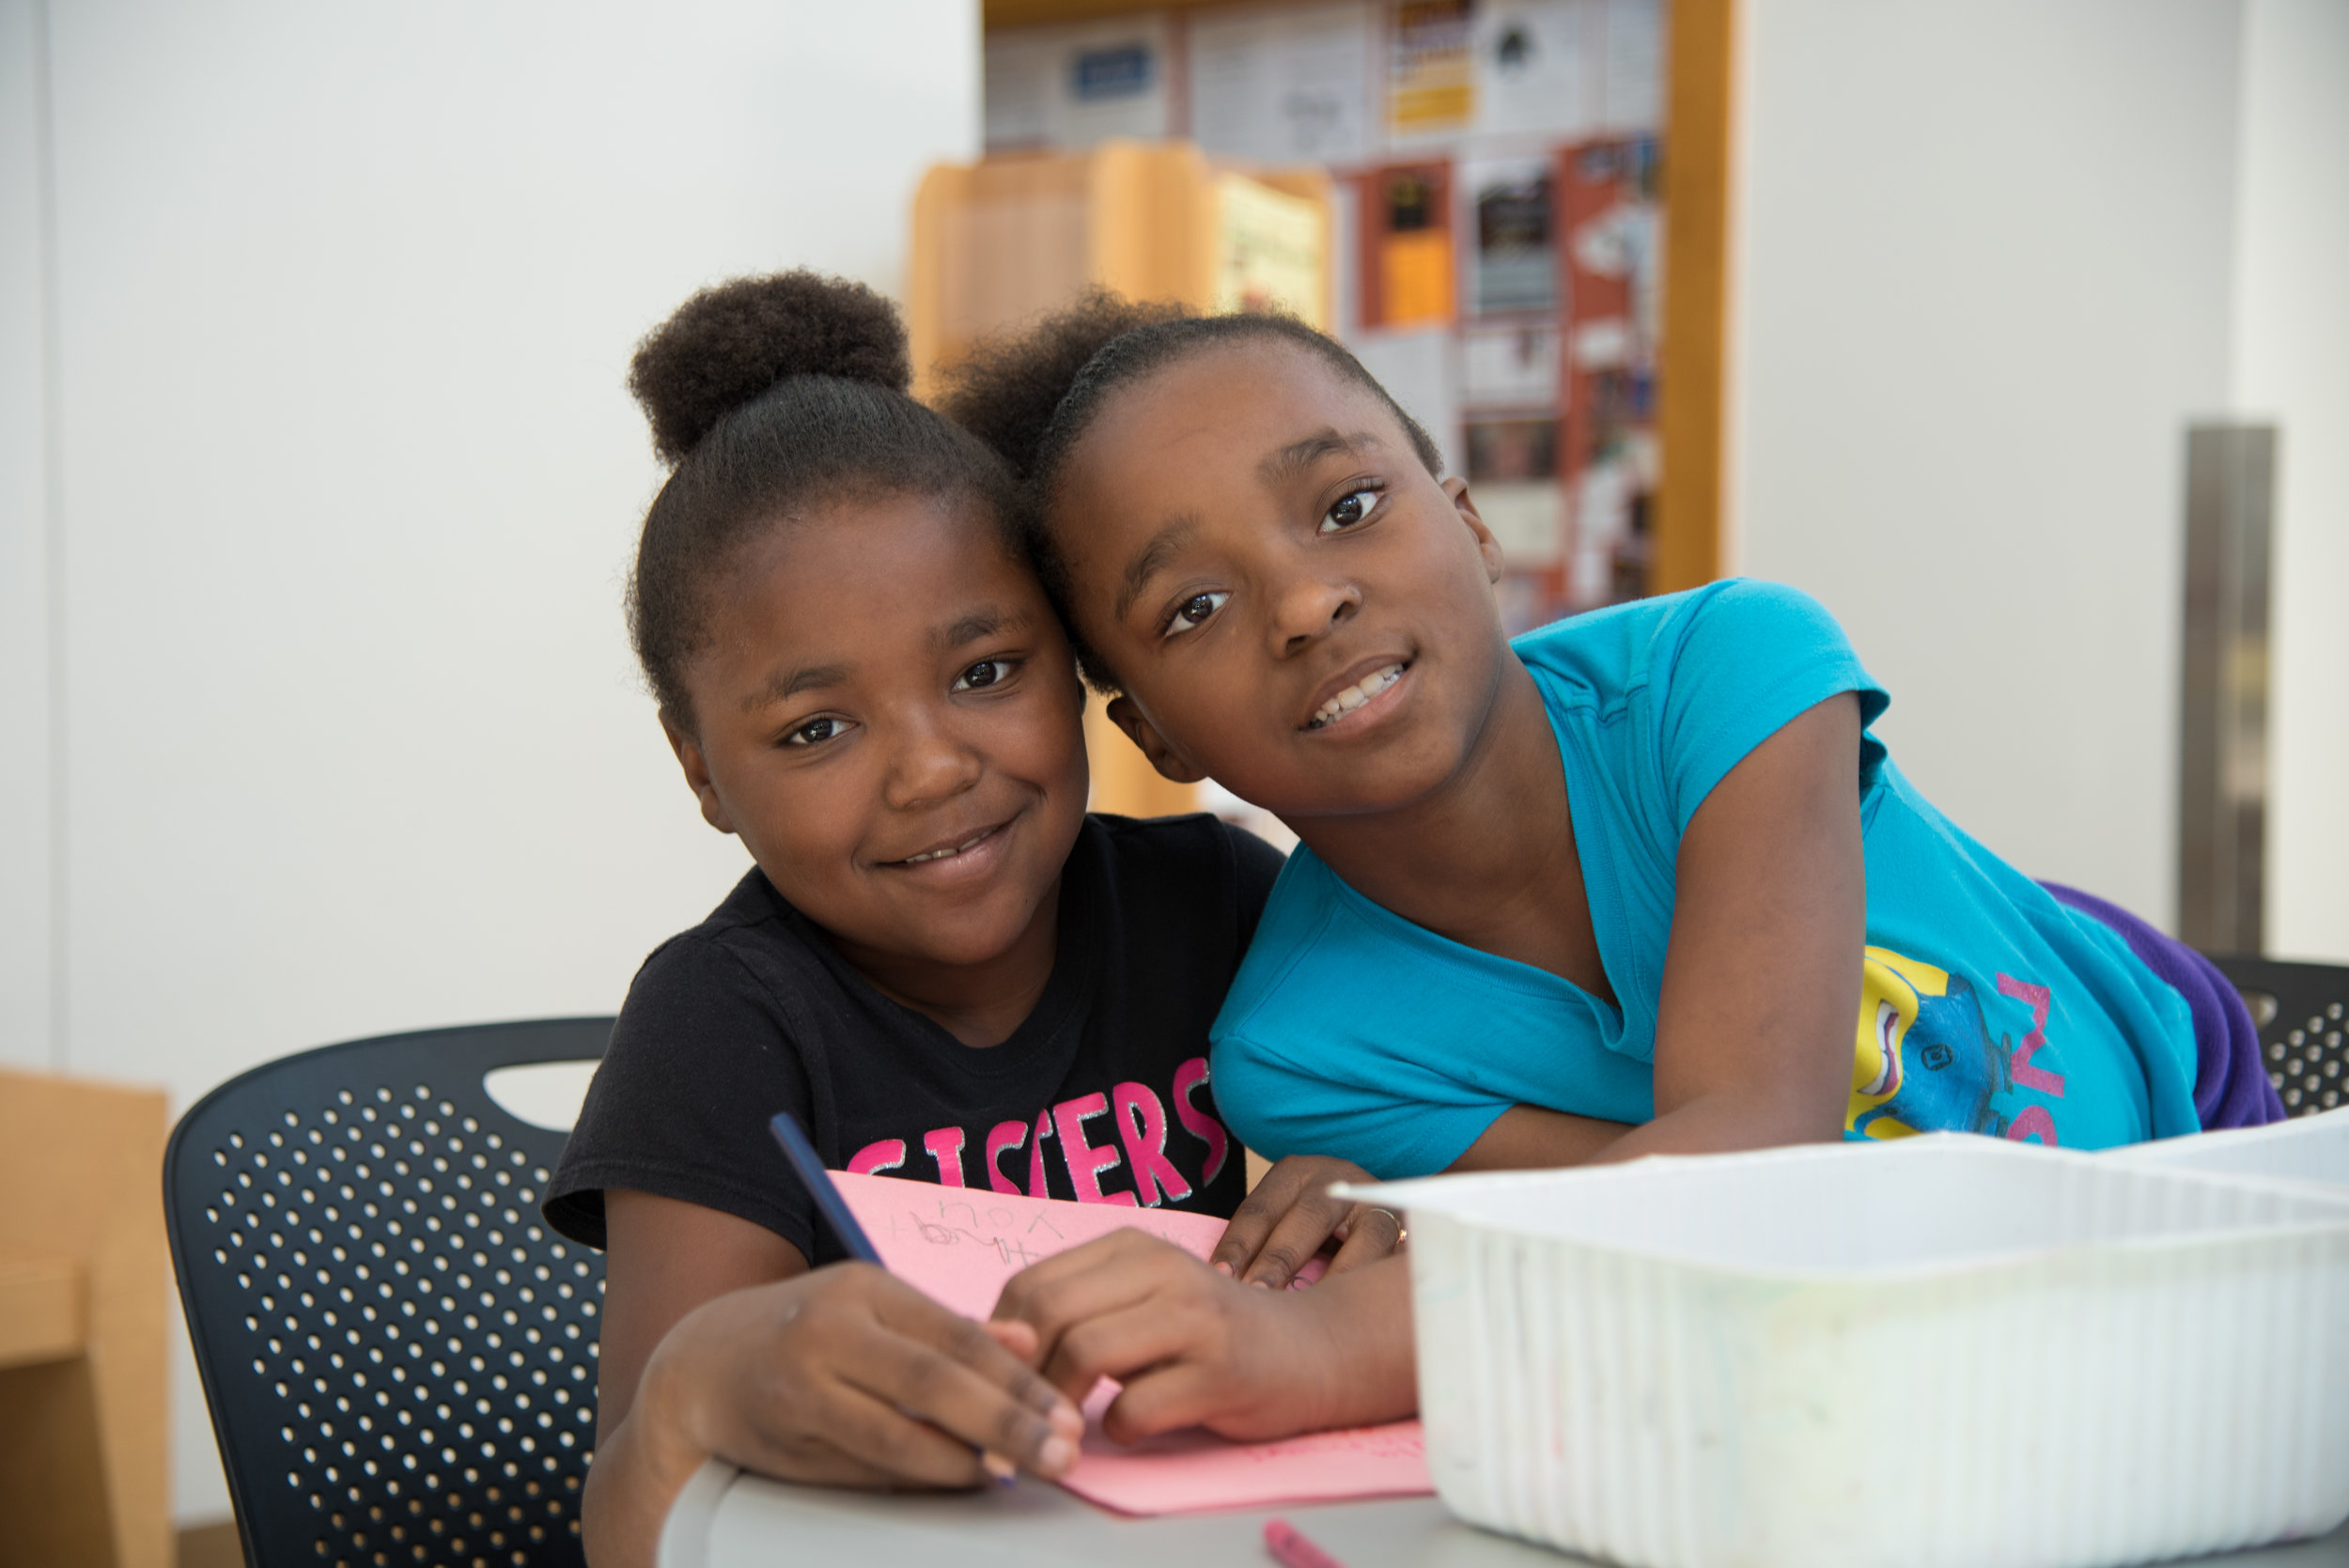 """Left to right: Mackenzie, Mckayla  """"I'm excited about learning how to play drums,"""" says Mckayla, age 7. Her friend, Mackenzie, shyly agrees."""